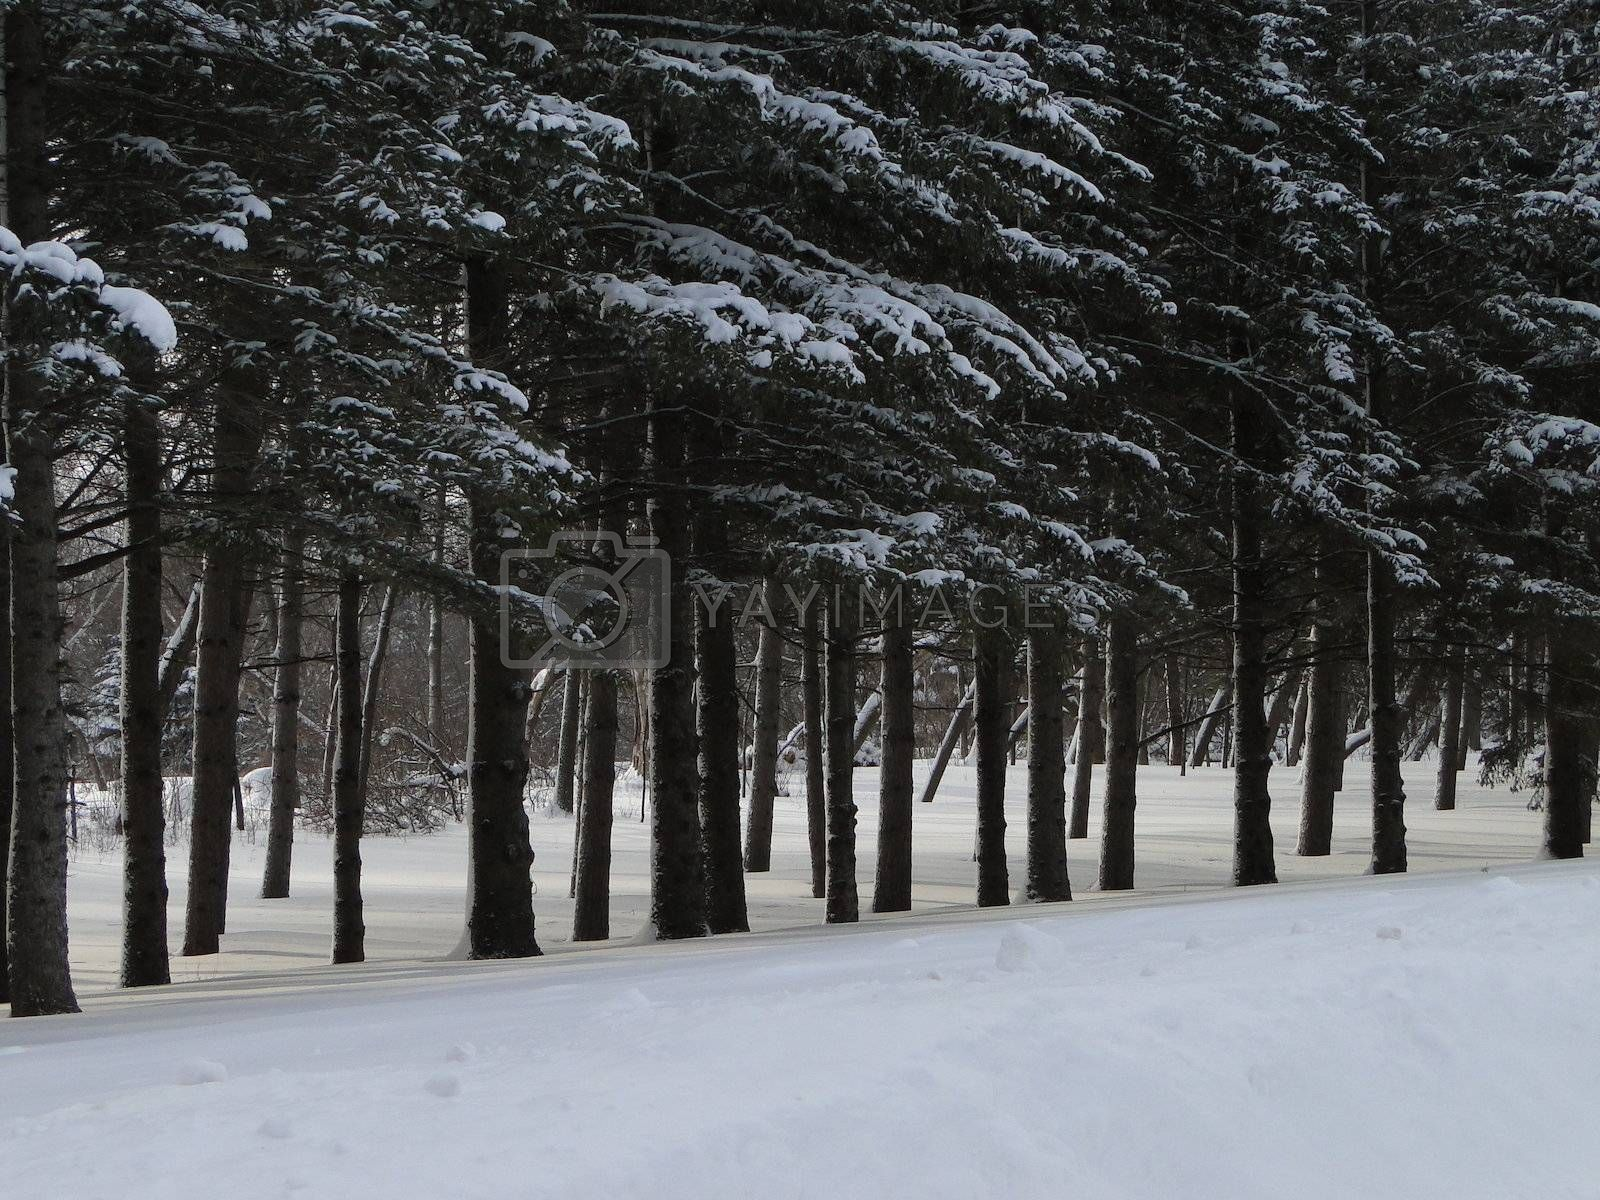 Pine forest on snowy day